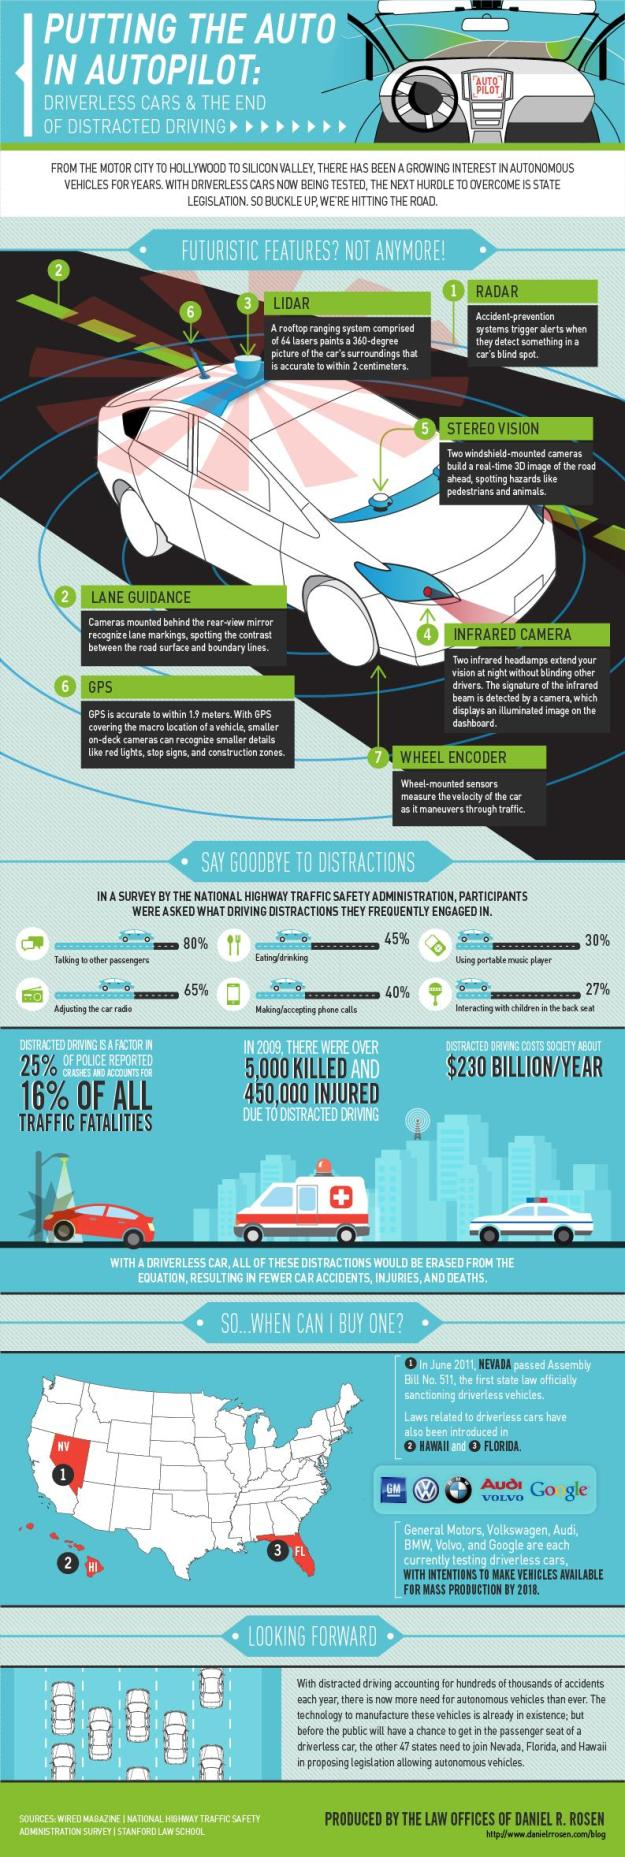 driverless-car-infographic-big